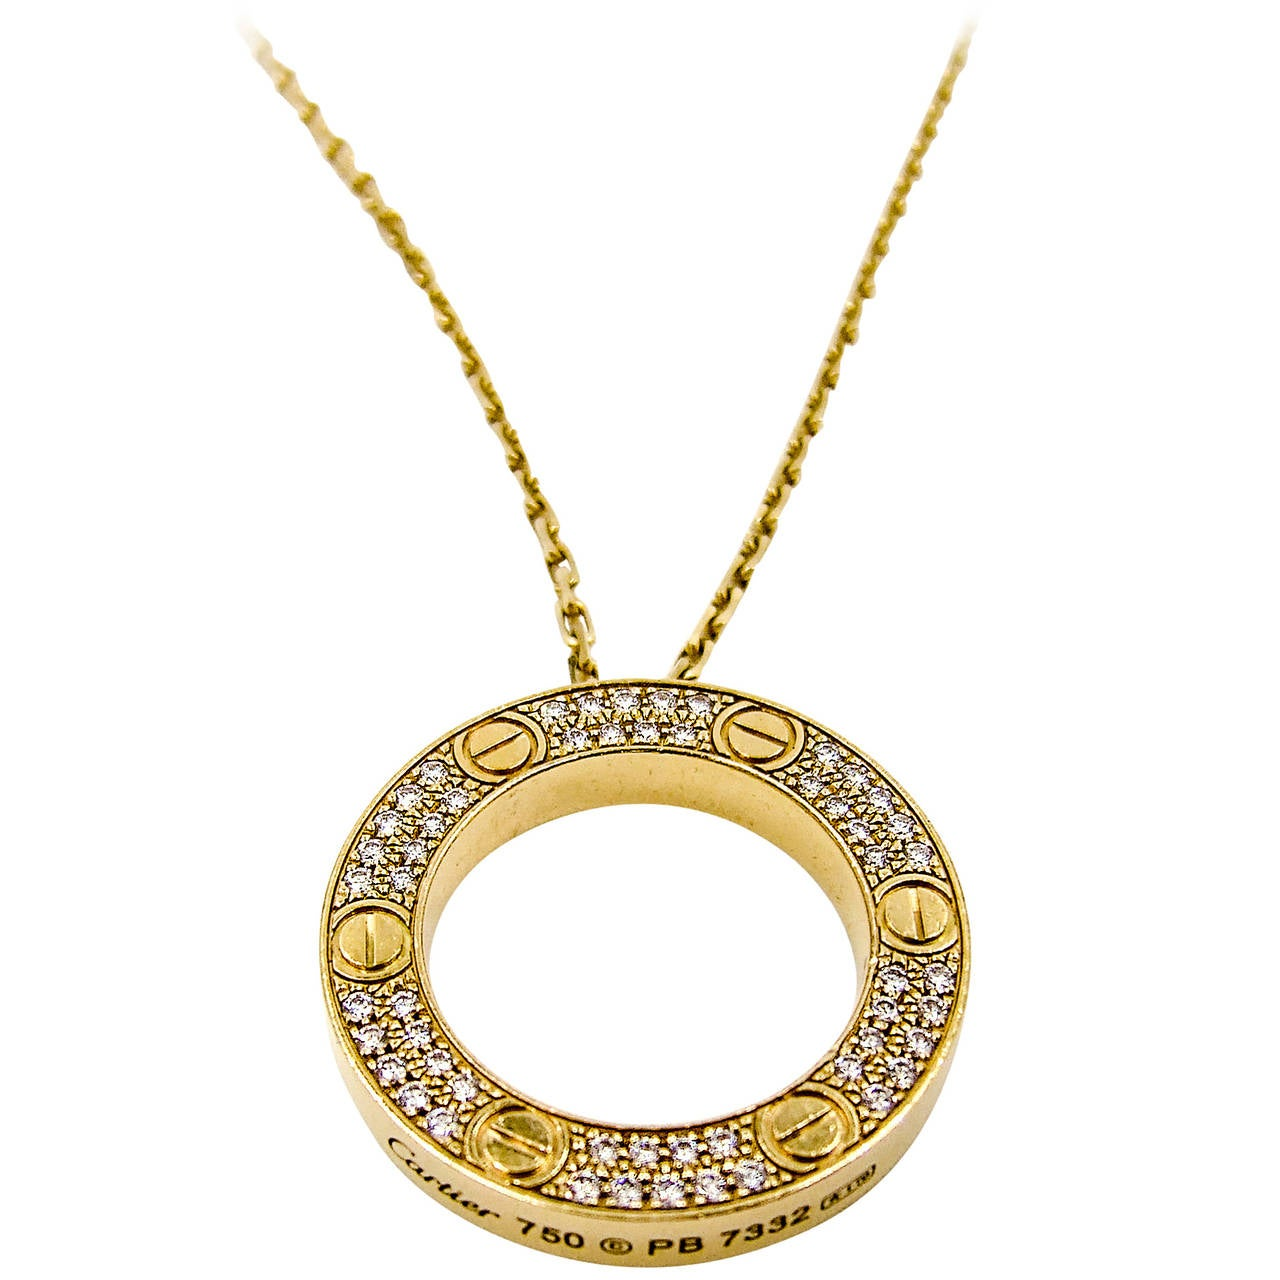 Cartier Aldo Cipullo Gold LOVE Necklace at 1stdibs